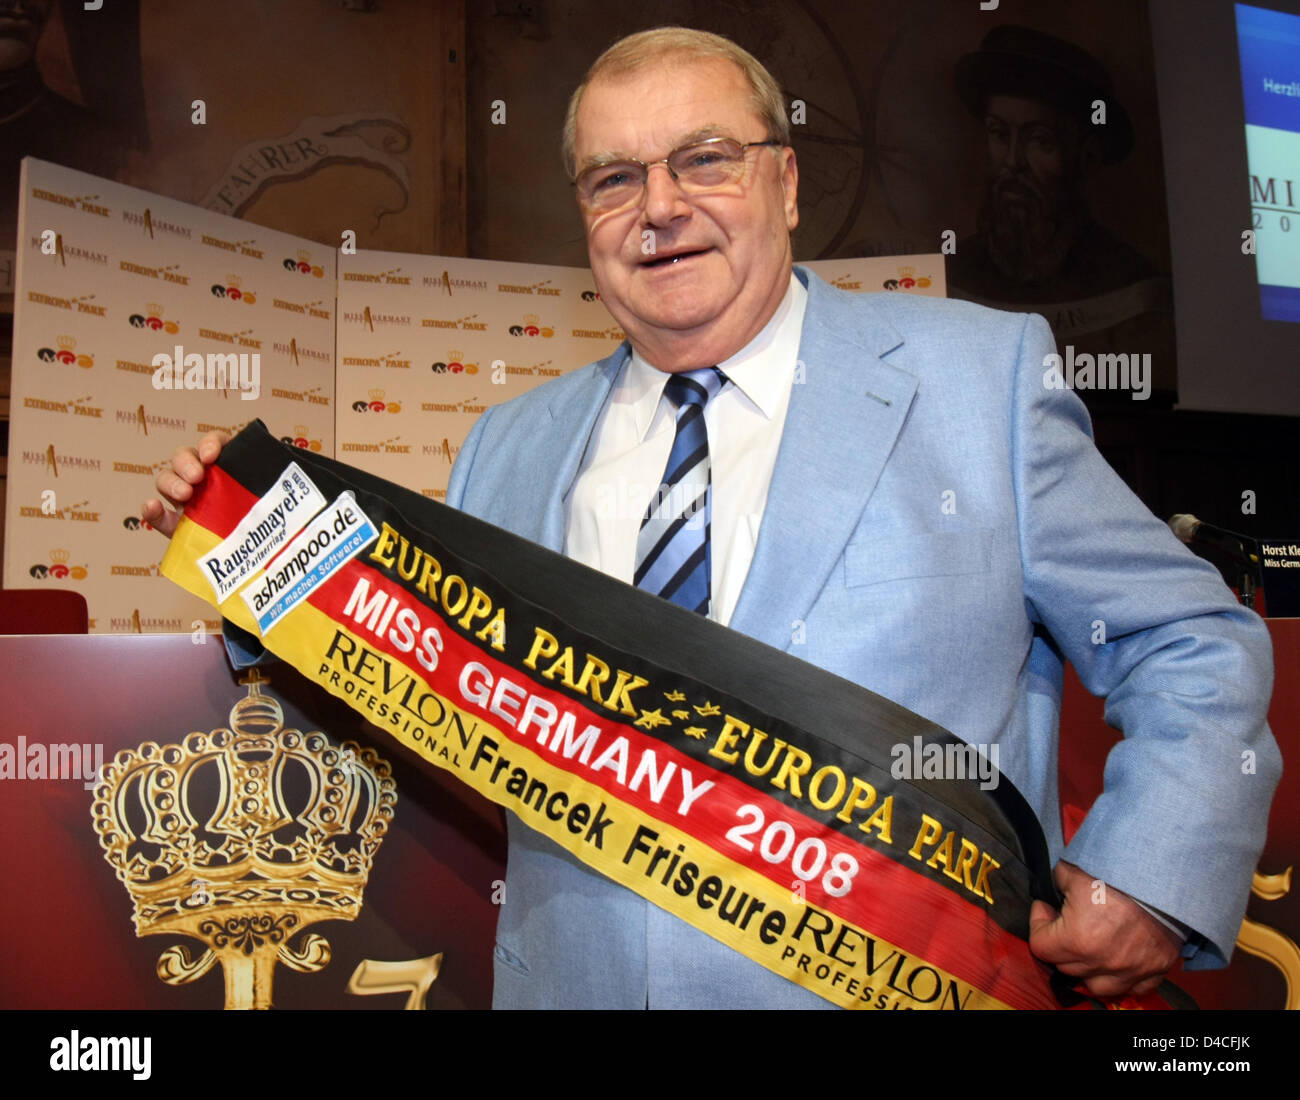 Horst Klemmer, organisor of the 'Miss Germany 2008' contest poses with a sash at Europa-Park in Rust, Germany, - Stock Image